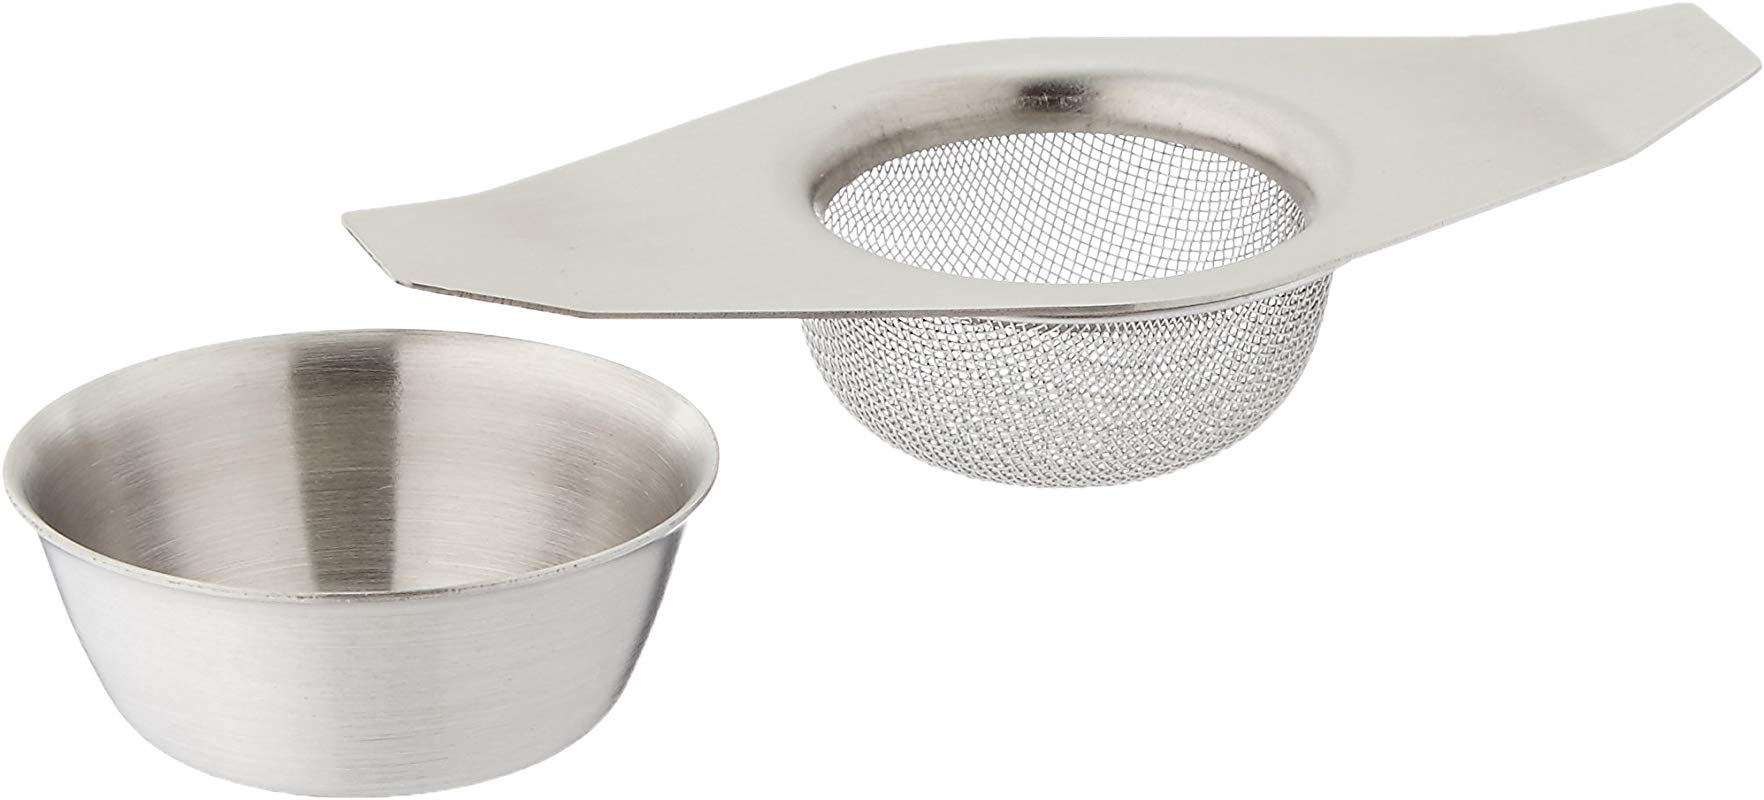 Espresso Supply Mesh Tea Strainer With Bowl Silver 10250